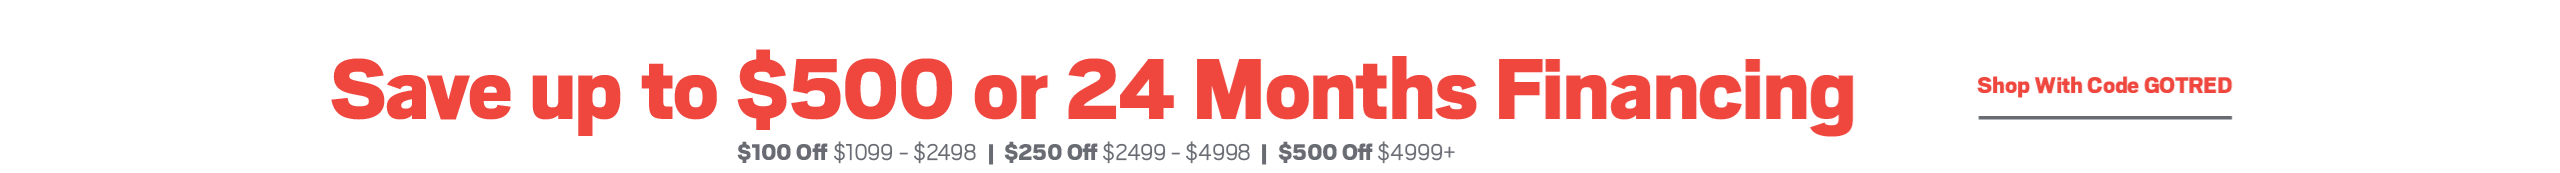 Save up to $500 (use code GOTRED) or ask about 24 months financing; see store for details.